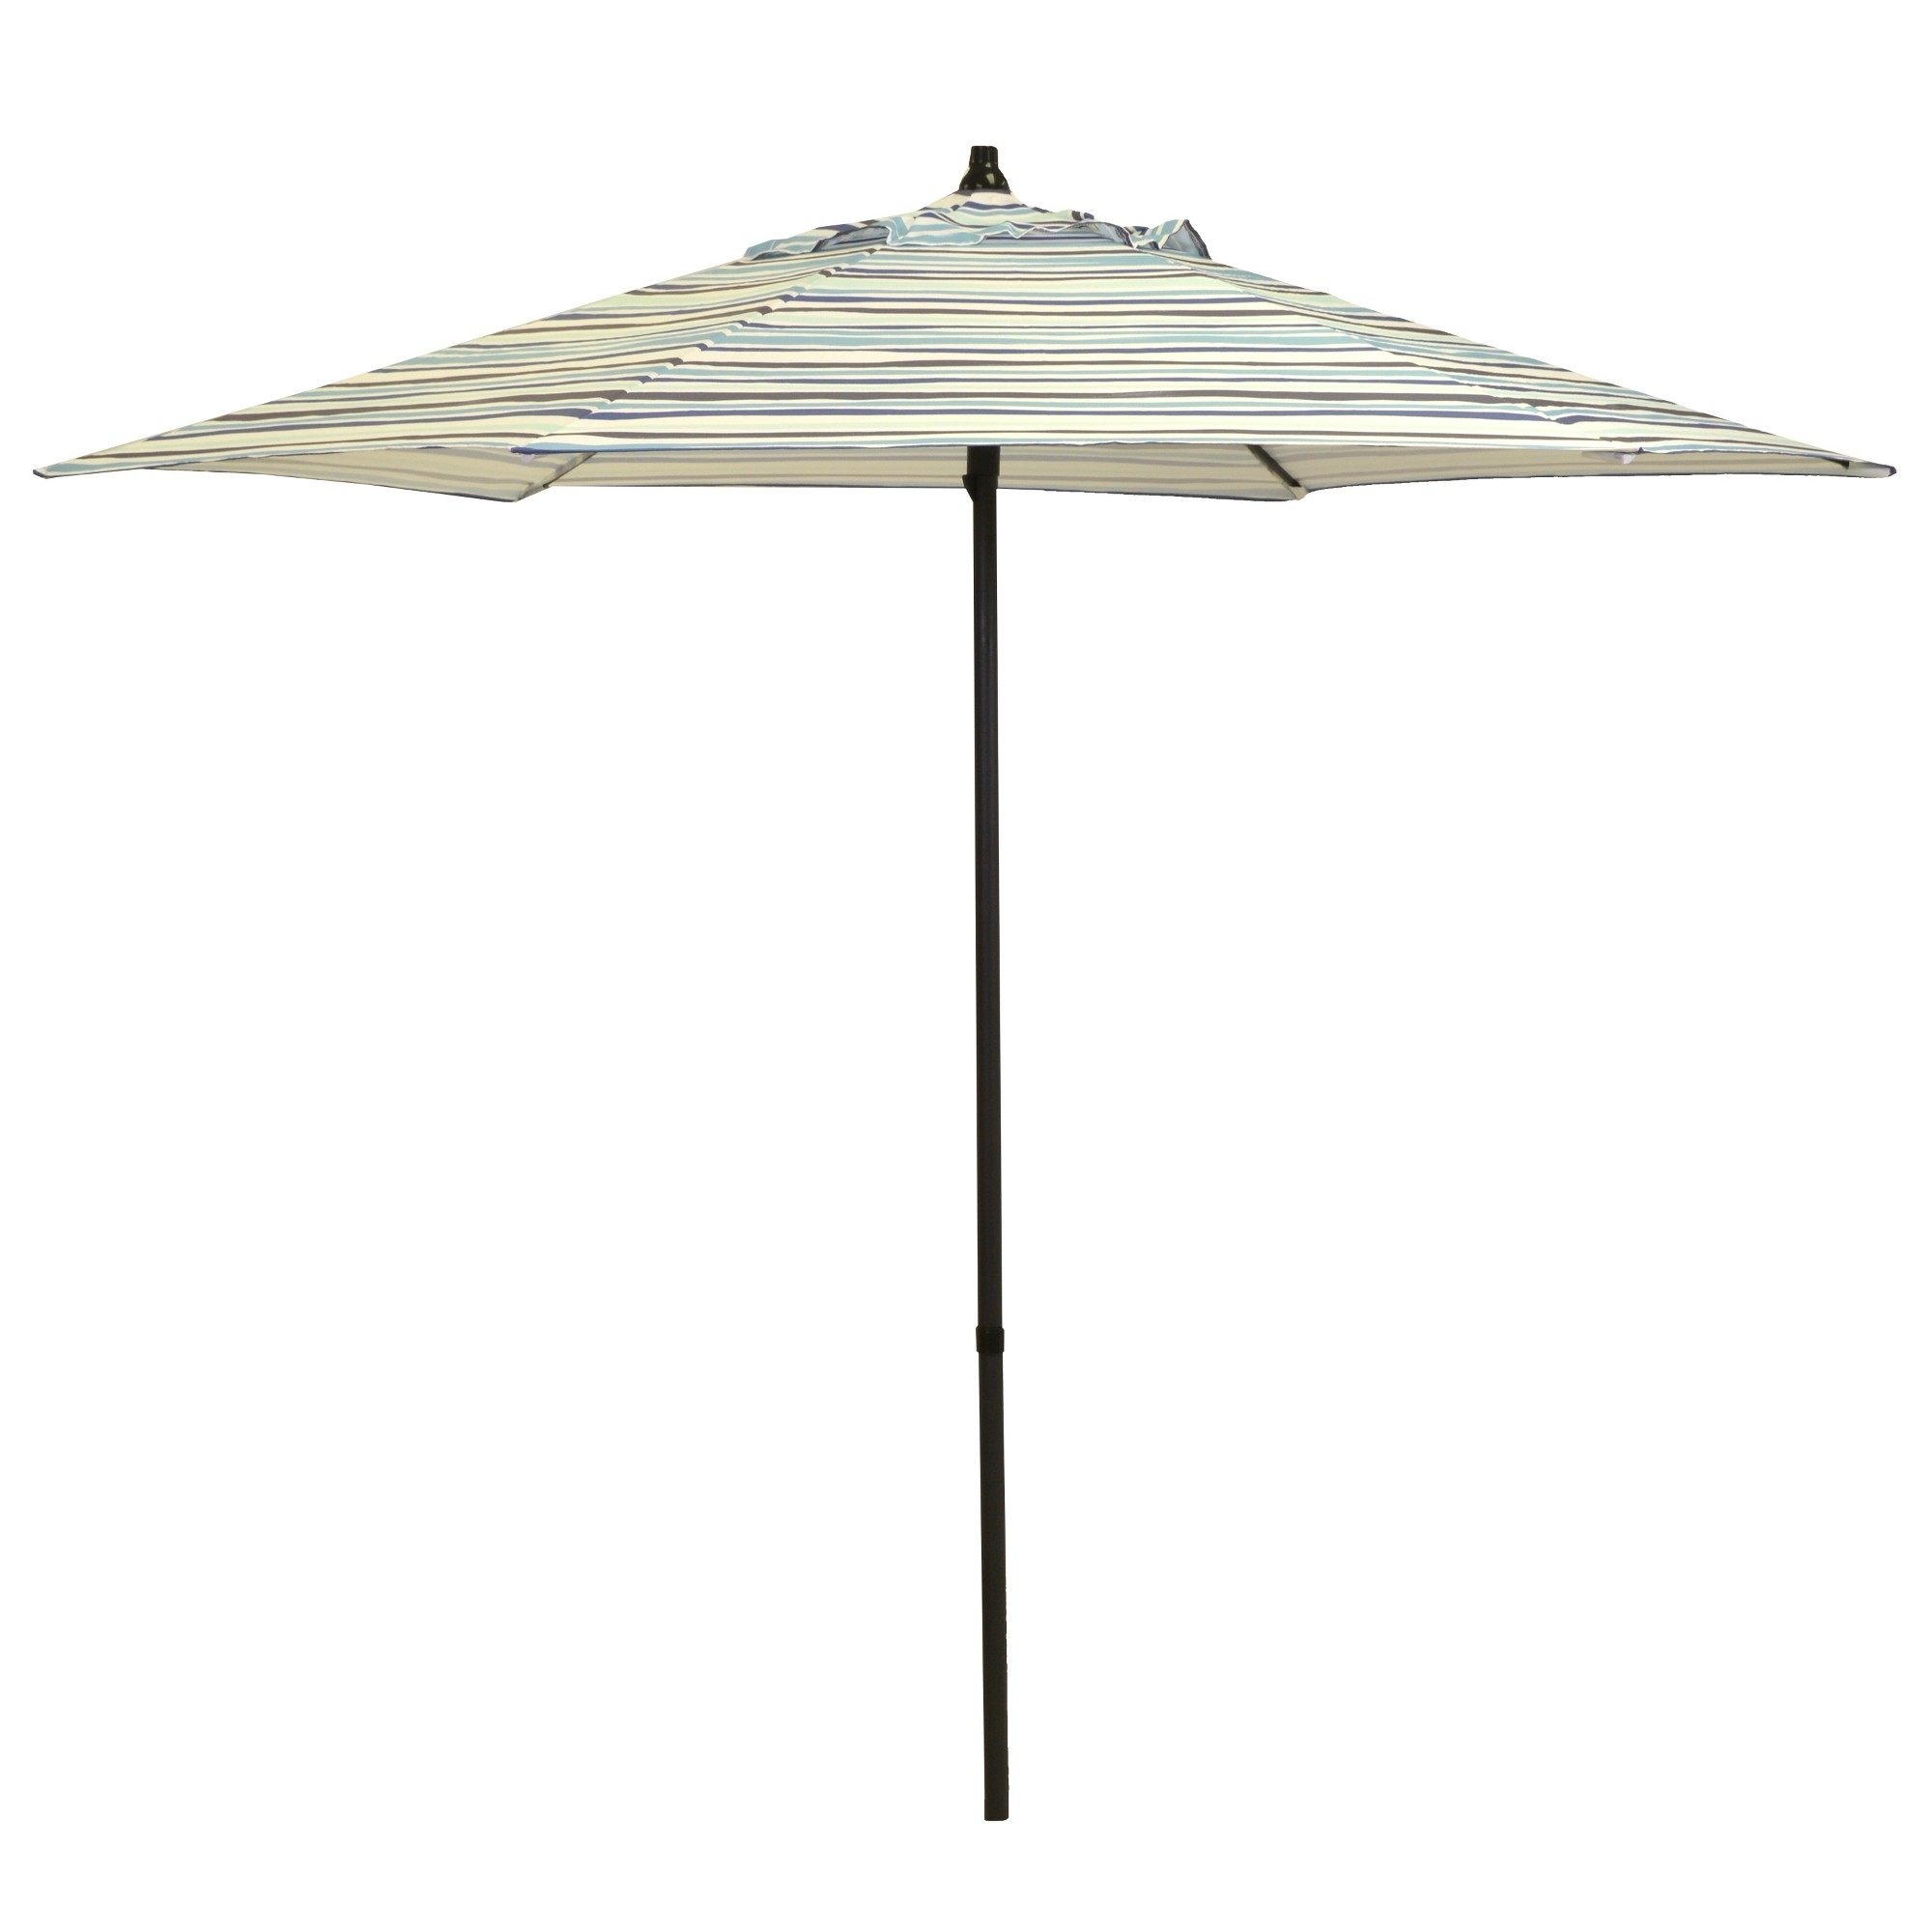 round patio umbrella turquoise black pole room essentials metal accent table cherry wood dining exterior west elm mid century bedside mosaic tile outdoor side wade furniture